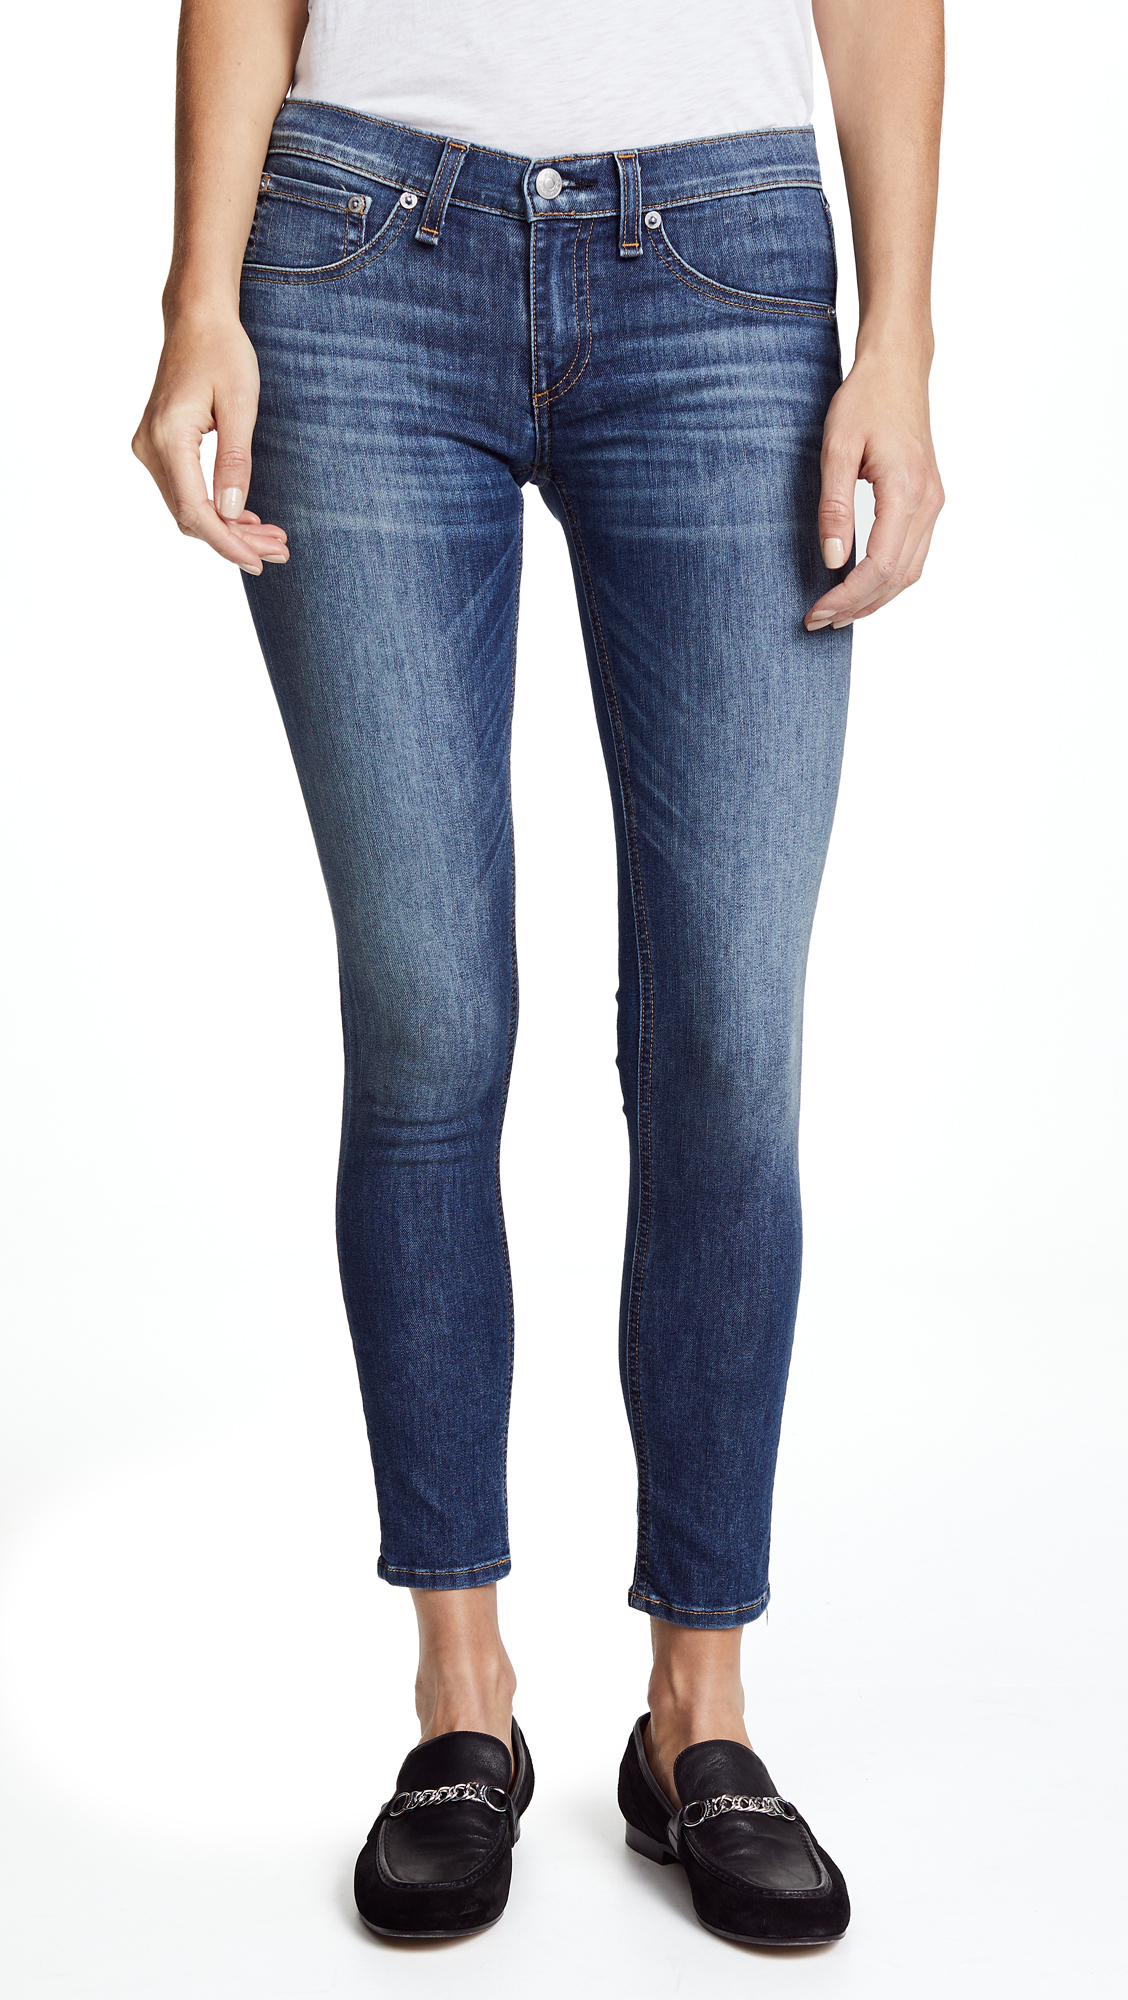 Rag & Bone/JEAN The Capri Jeans - Rae